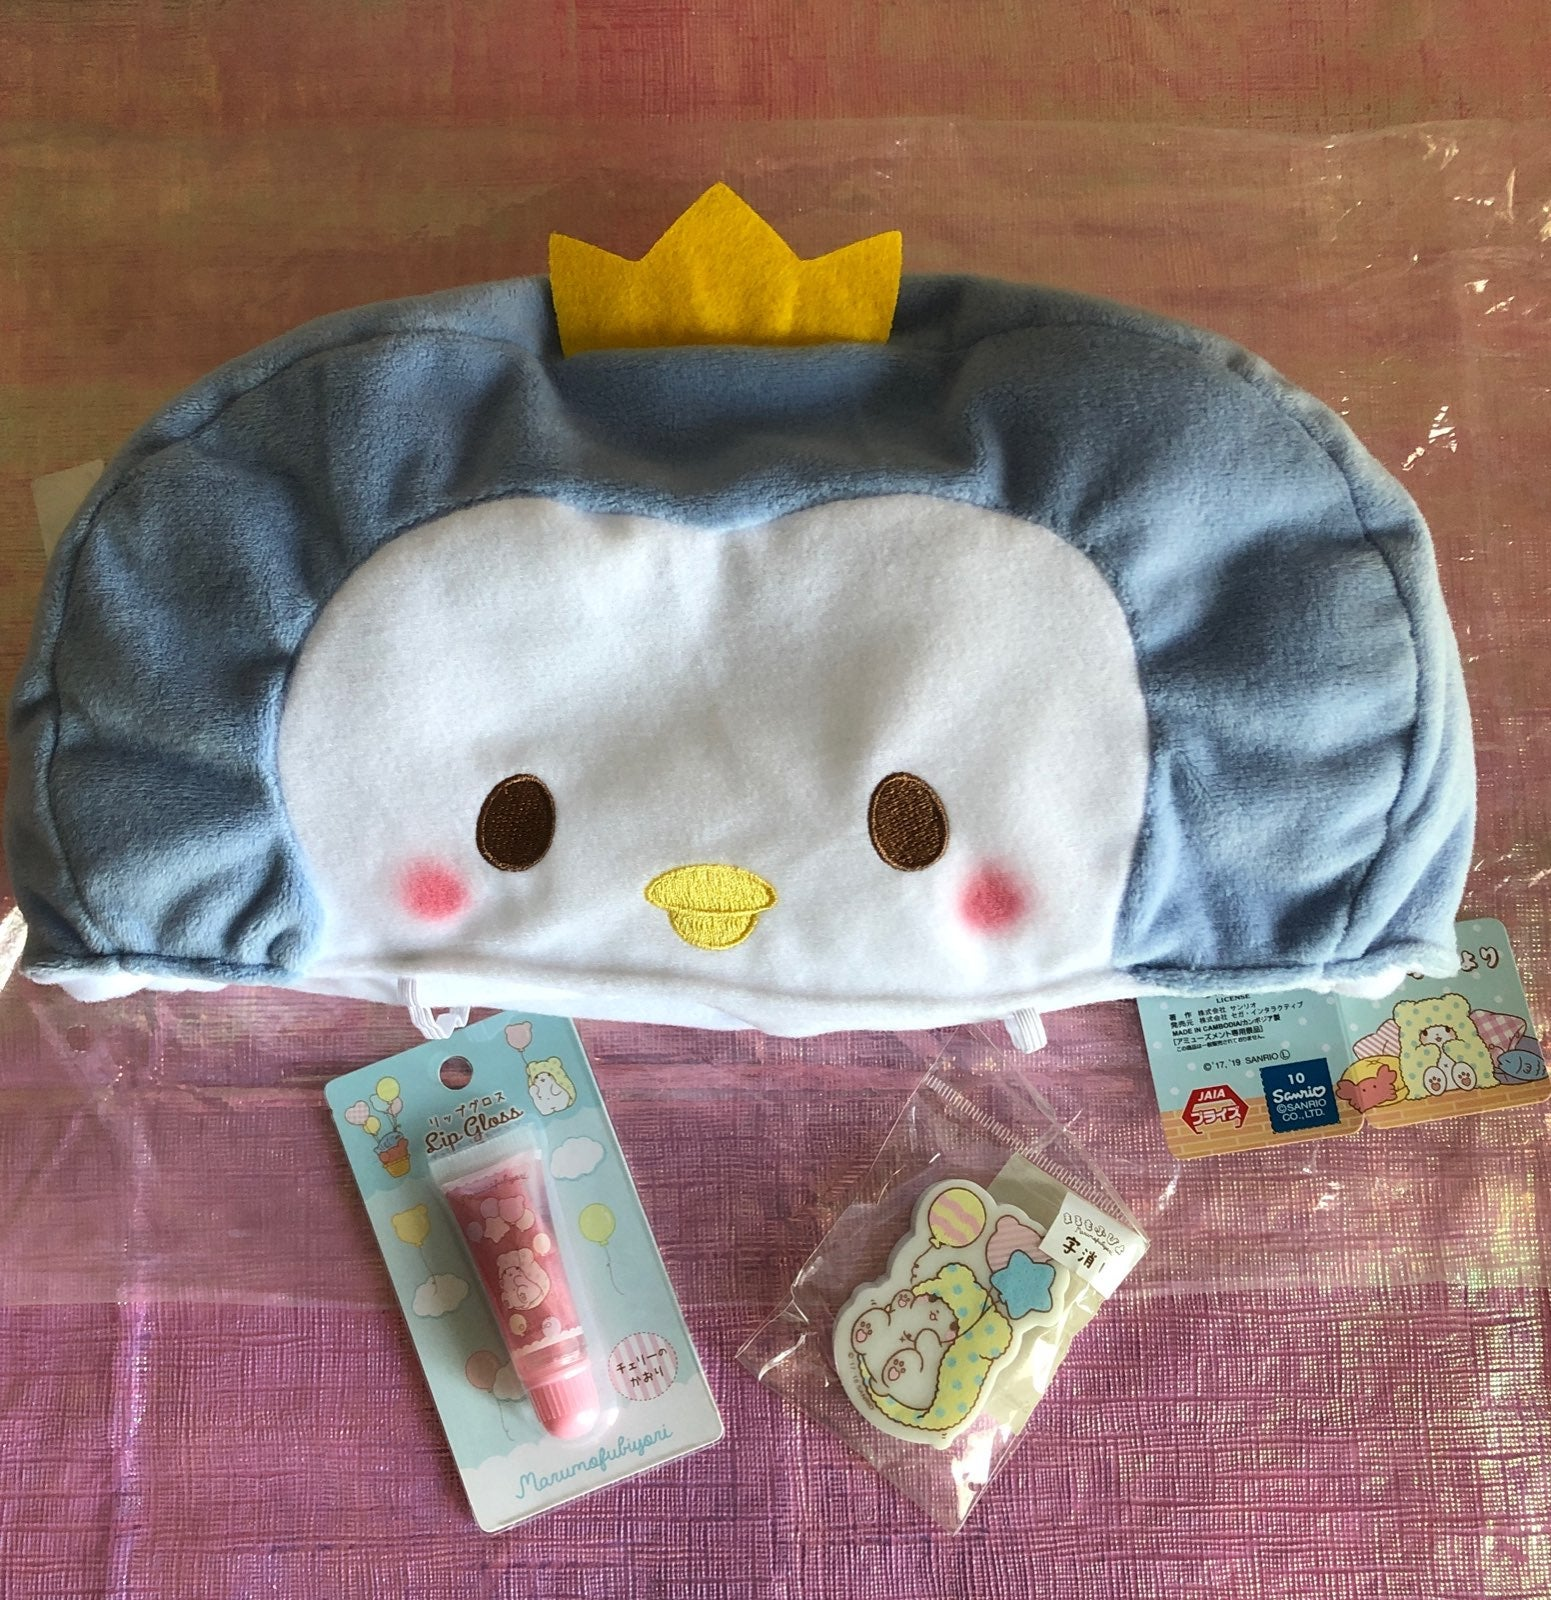 Mitsumoribaba Plush, Lip Gloss & More! 2